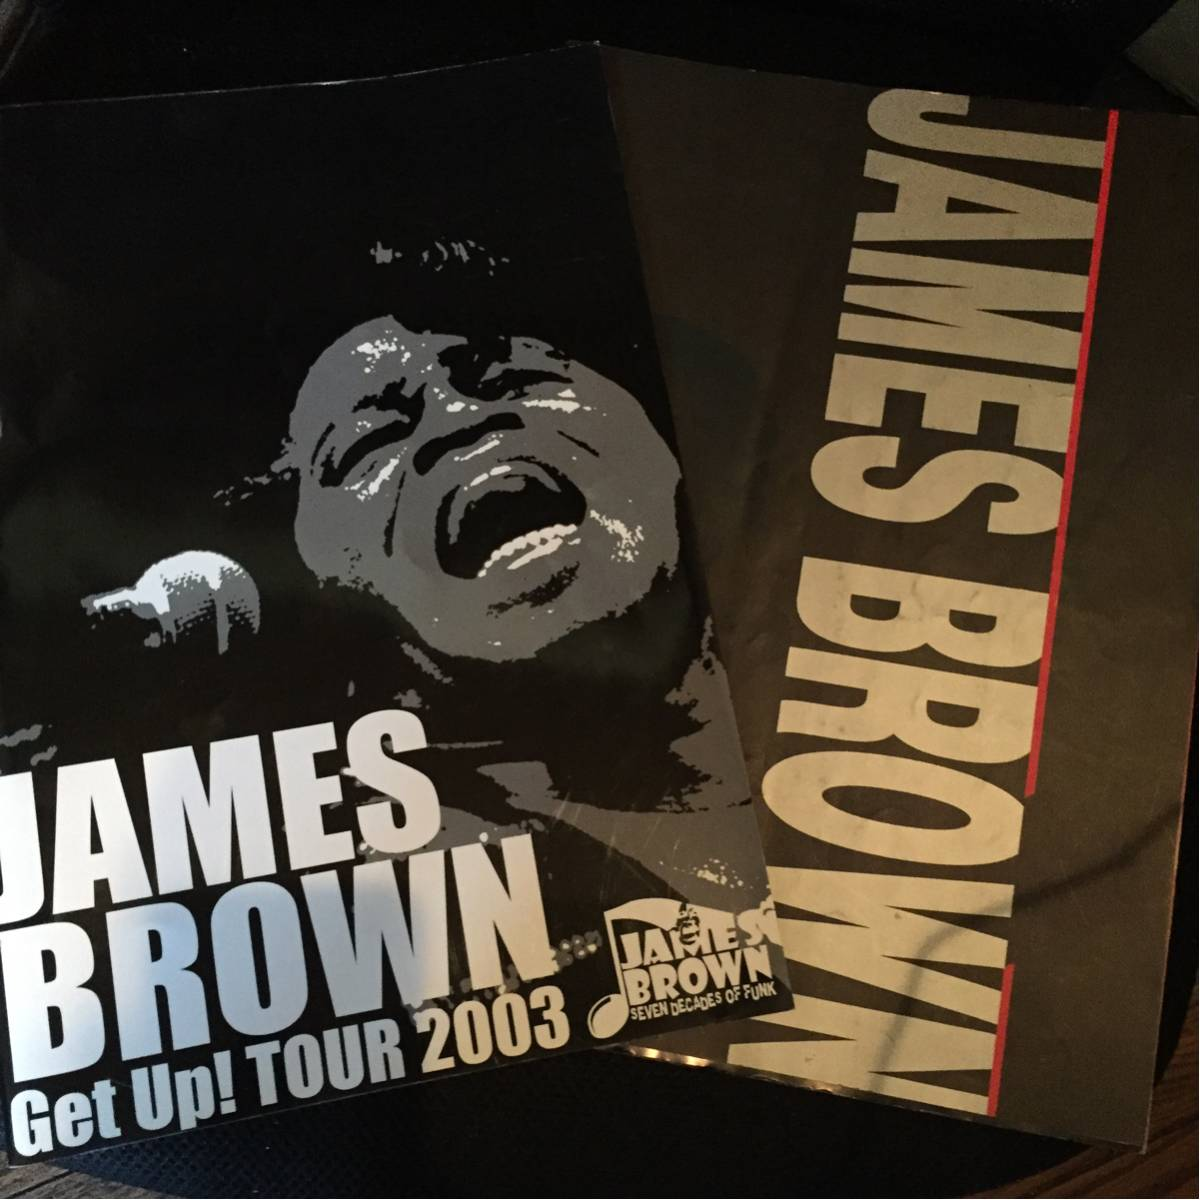 JAMES BROWN ツアーパンフ 1992年 2003年 2組セット